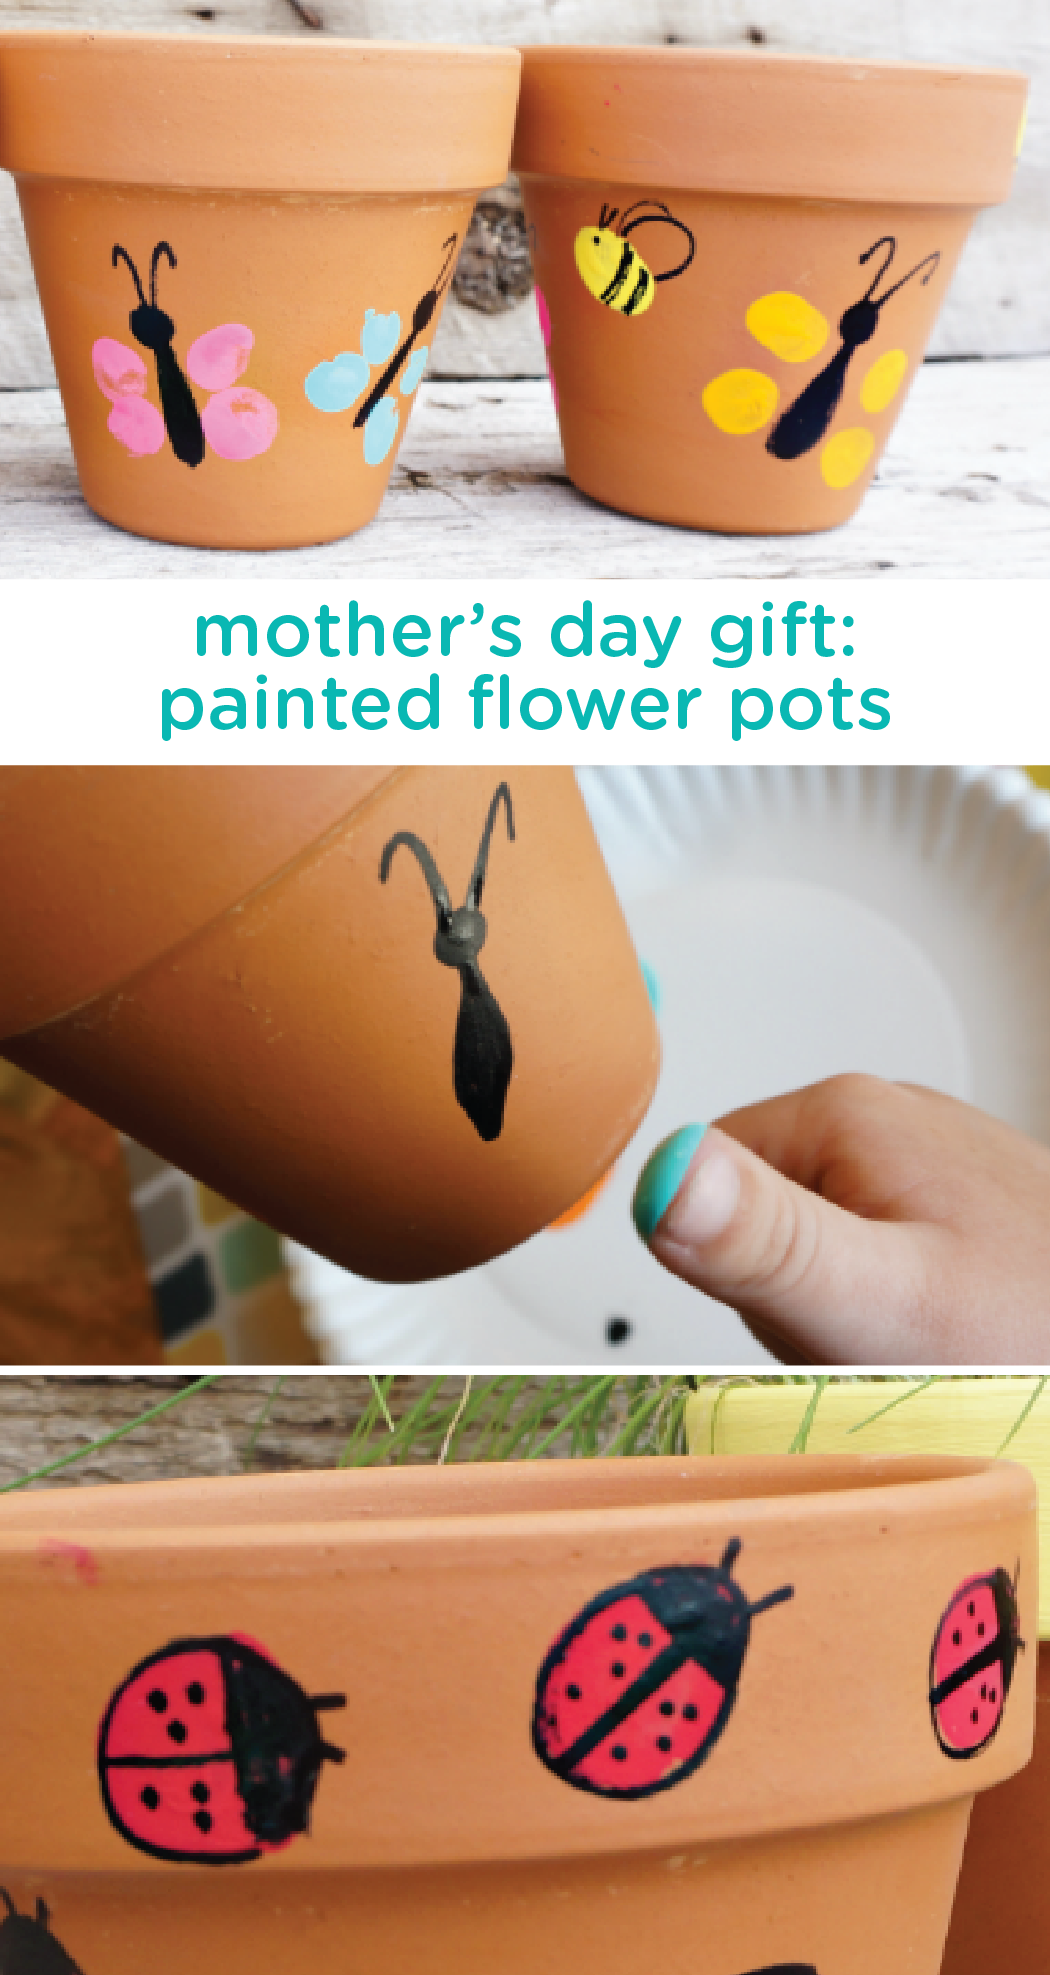 Diy Mothers Day Gifts For Grandma Thumbprint Art For Kids Painted Flower Pots Craft Baby